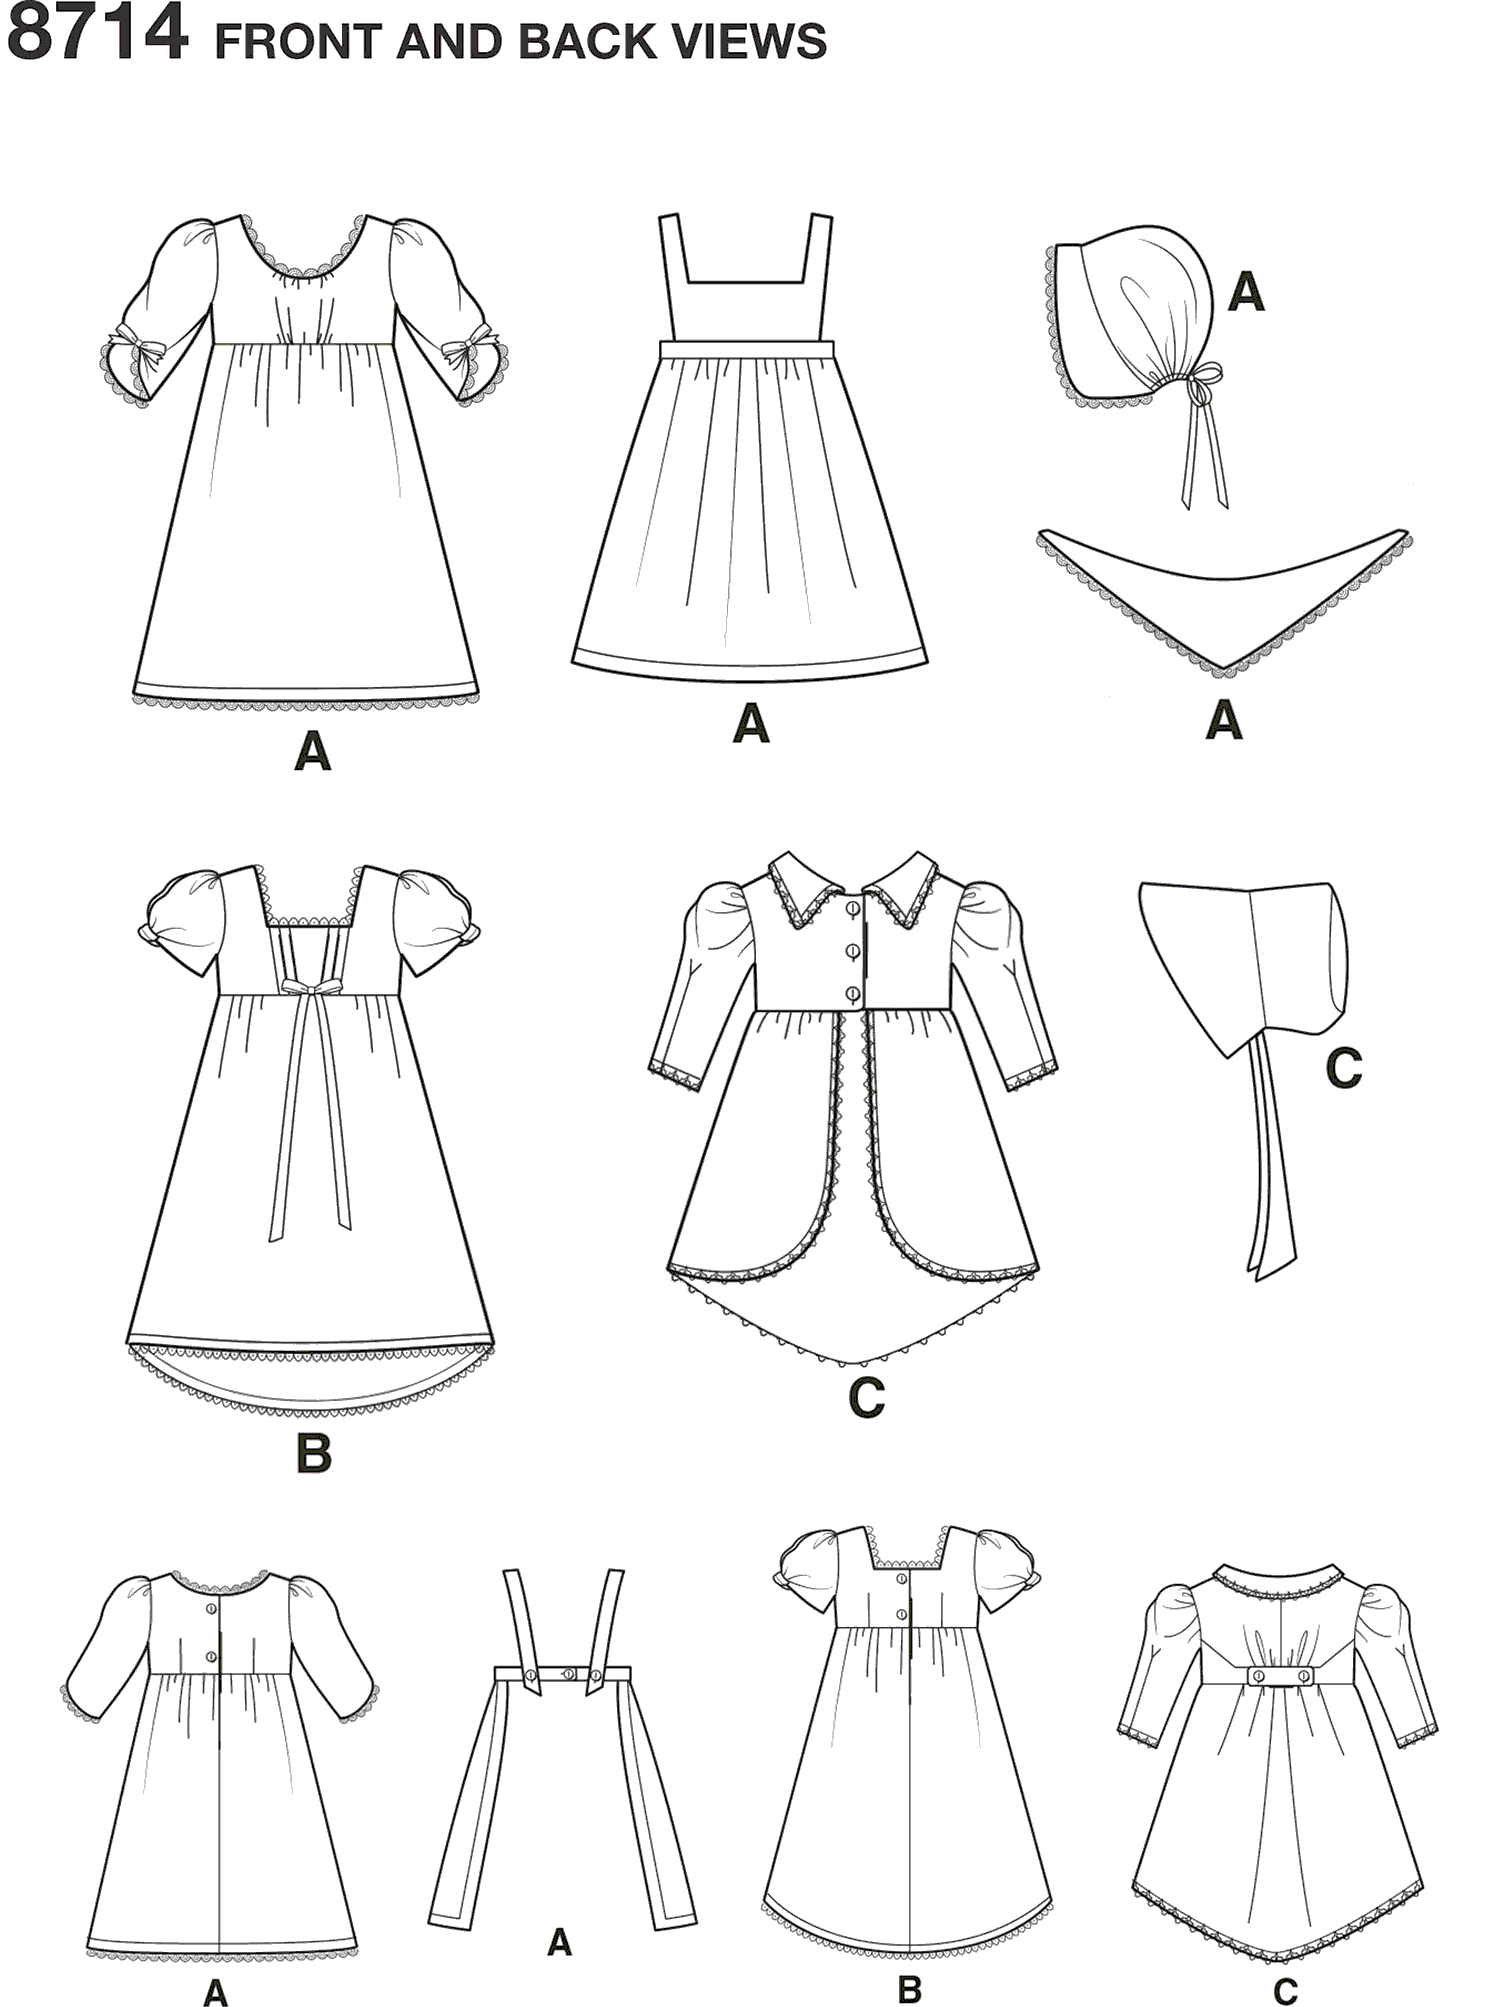 Simplicity Pattern 8714 18 Doll Clothes Line Art From Patternsandplains.com